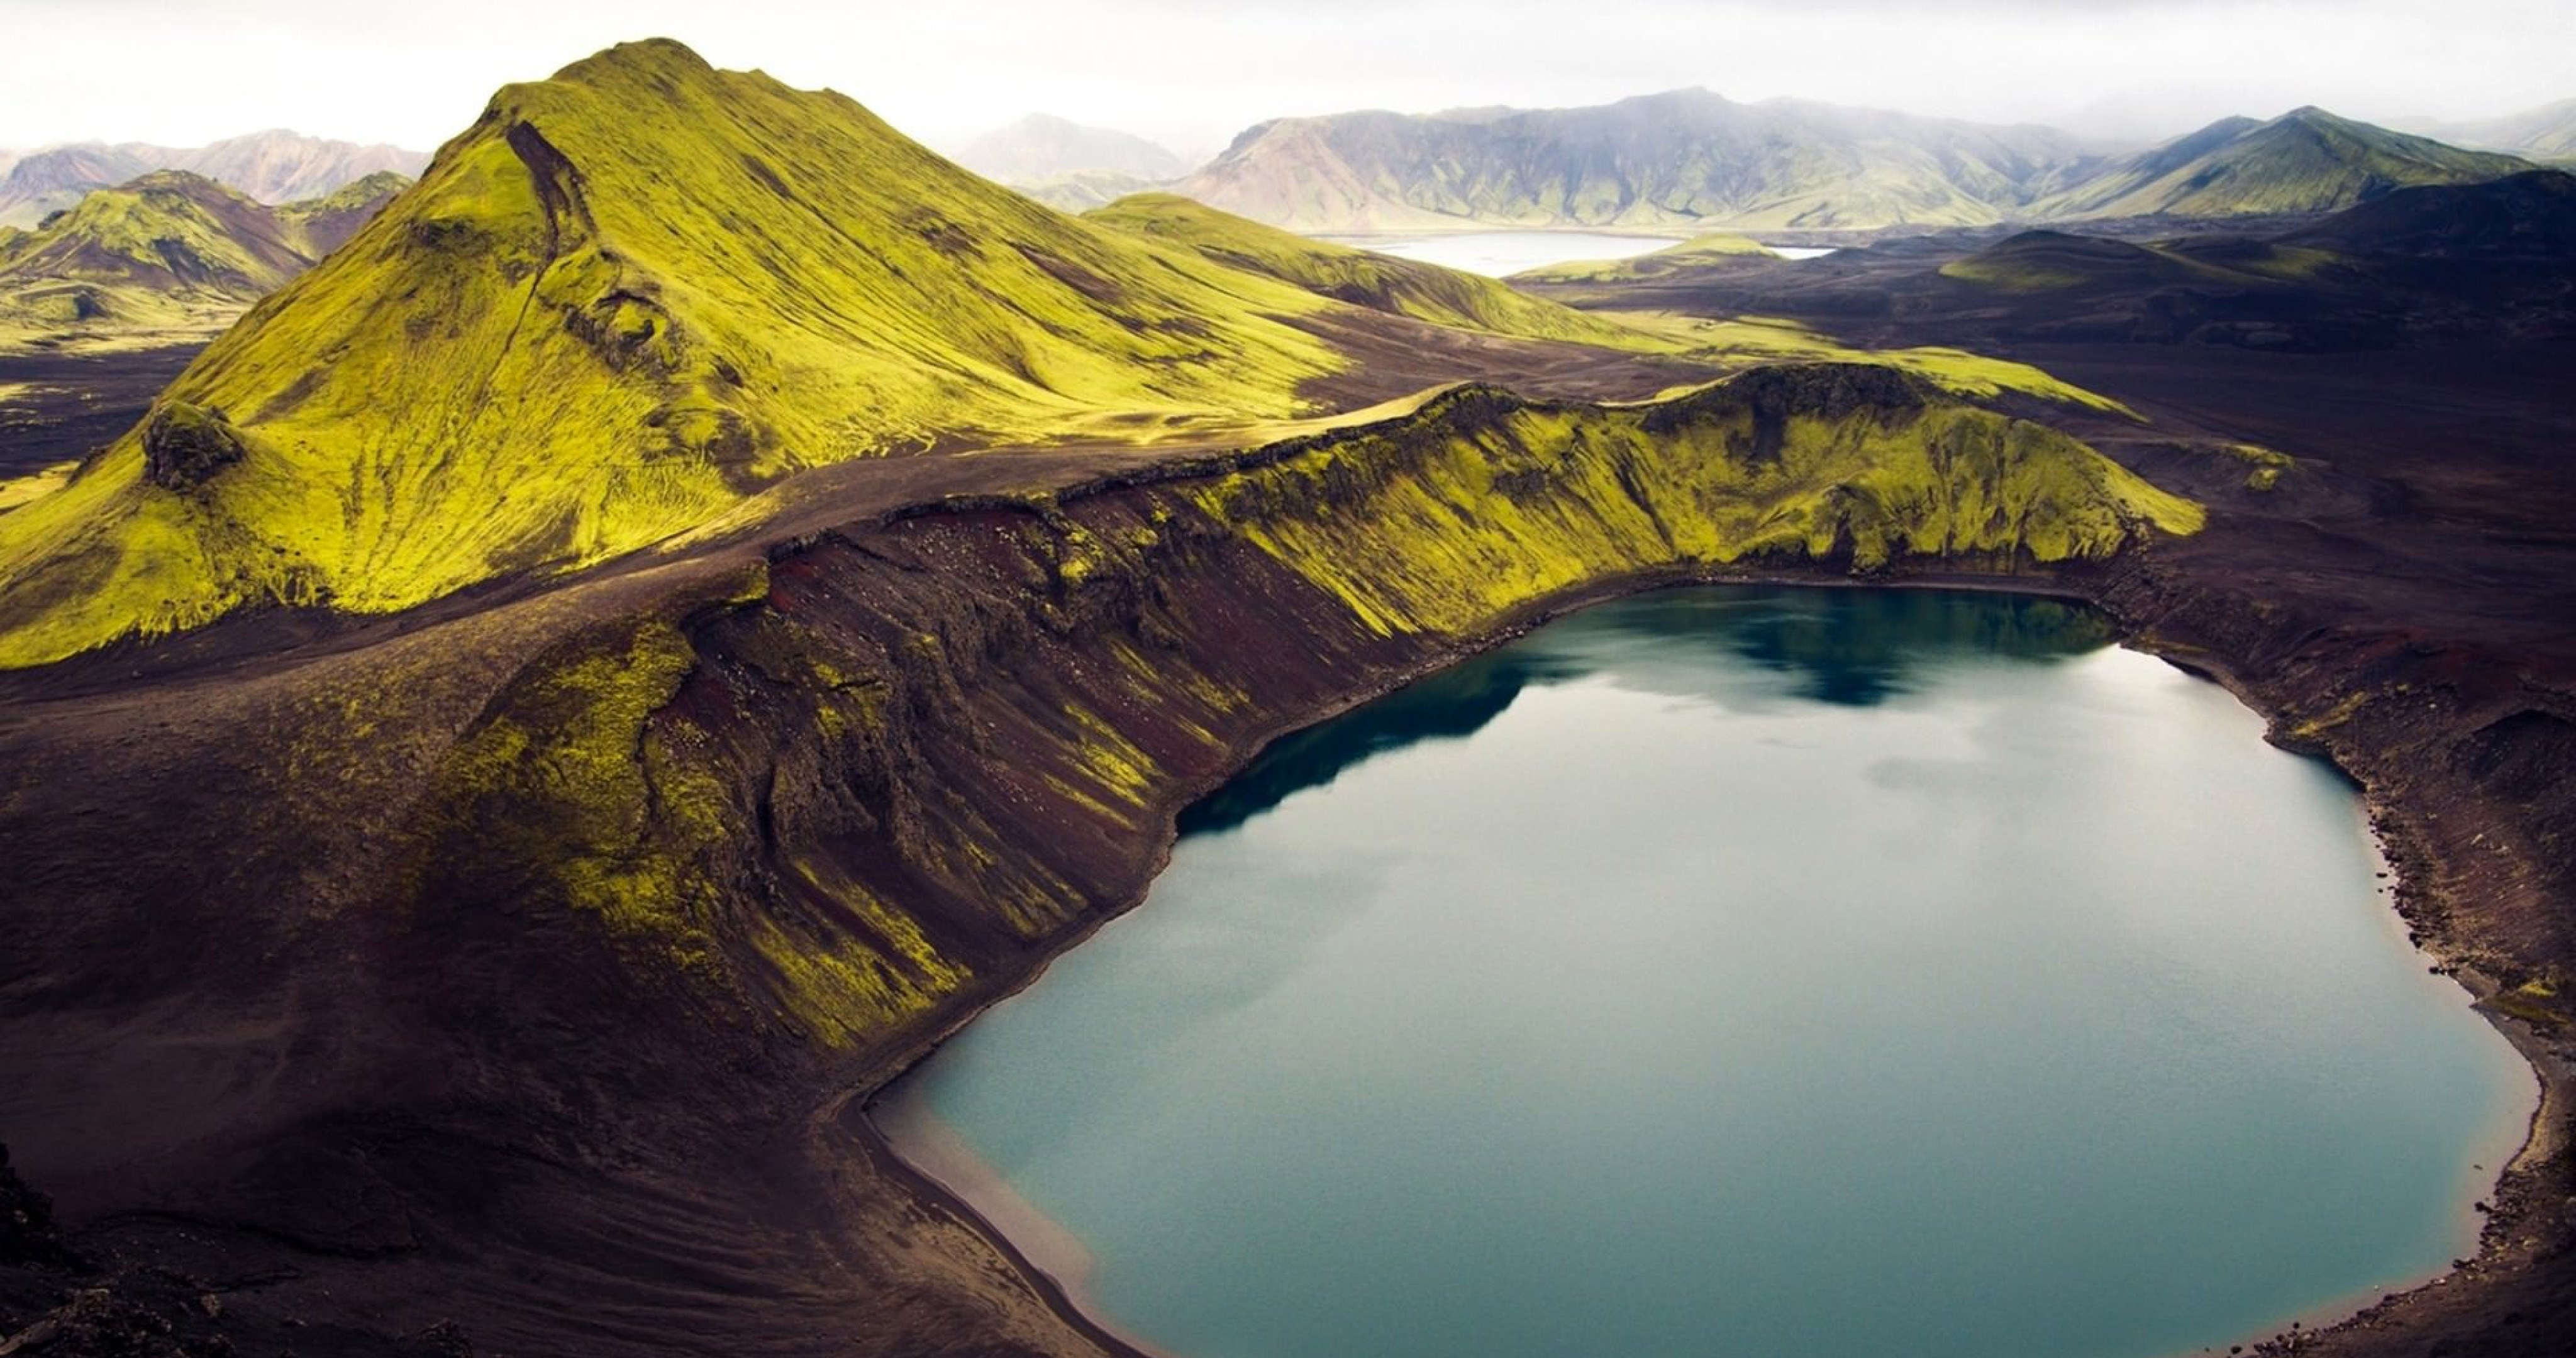 Iceland Mountains 4k Ultra Hd Wallpaper High Quality Walls